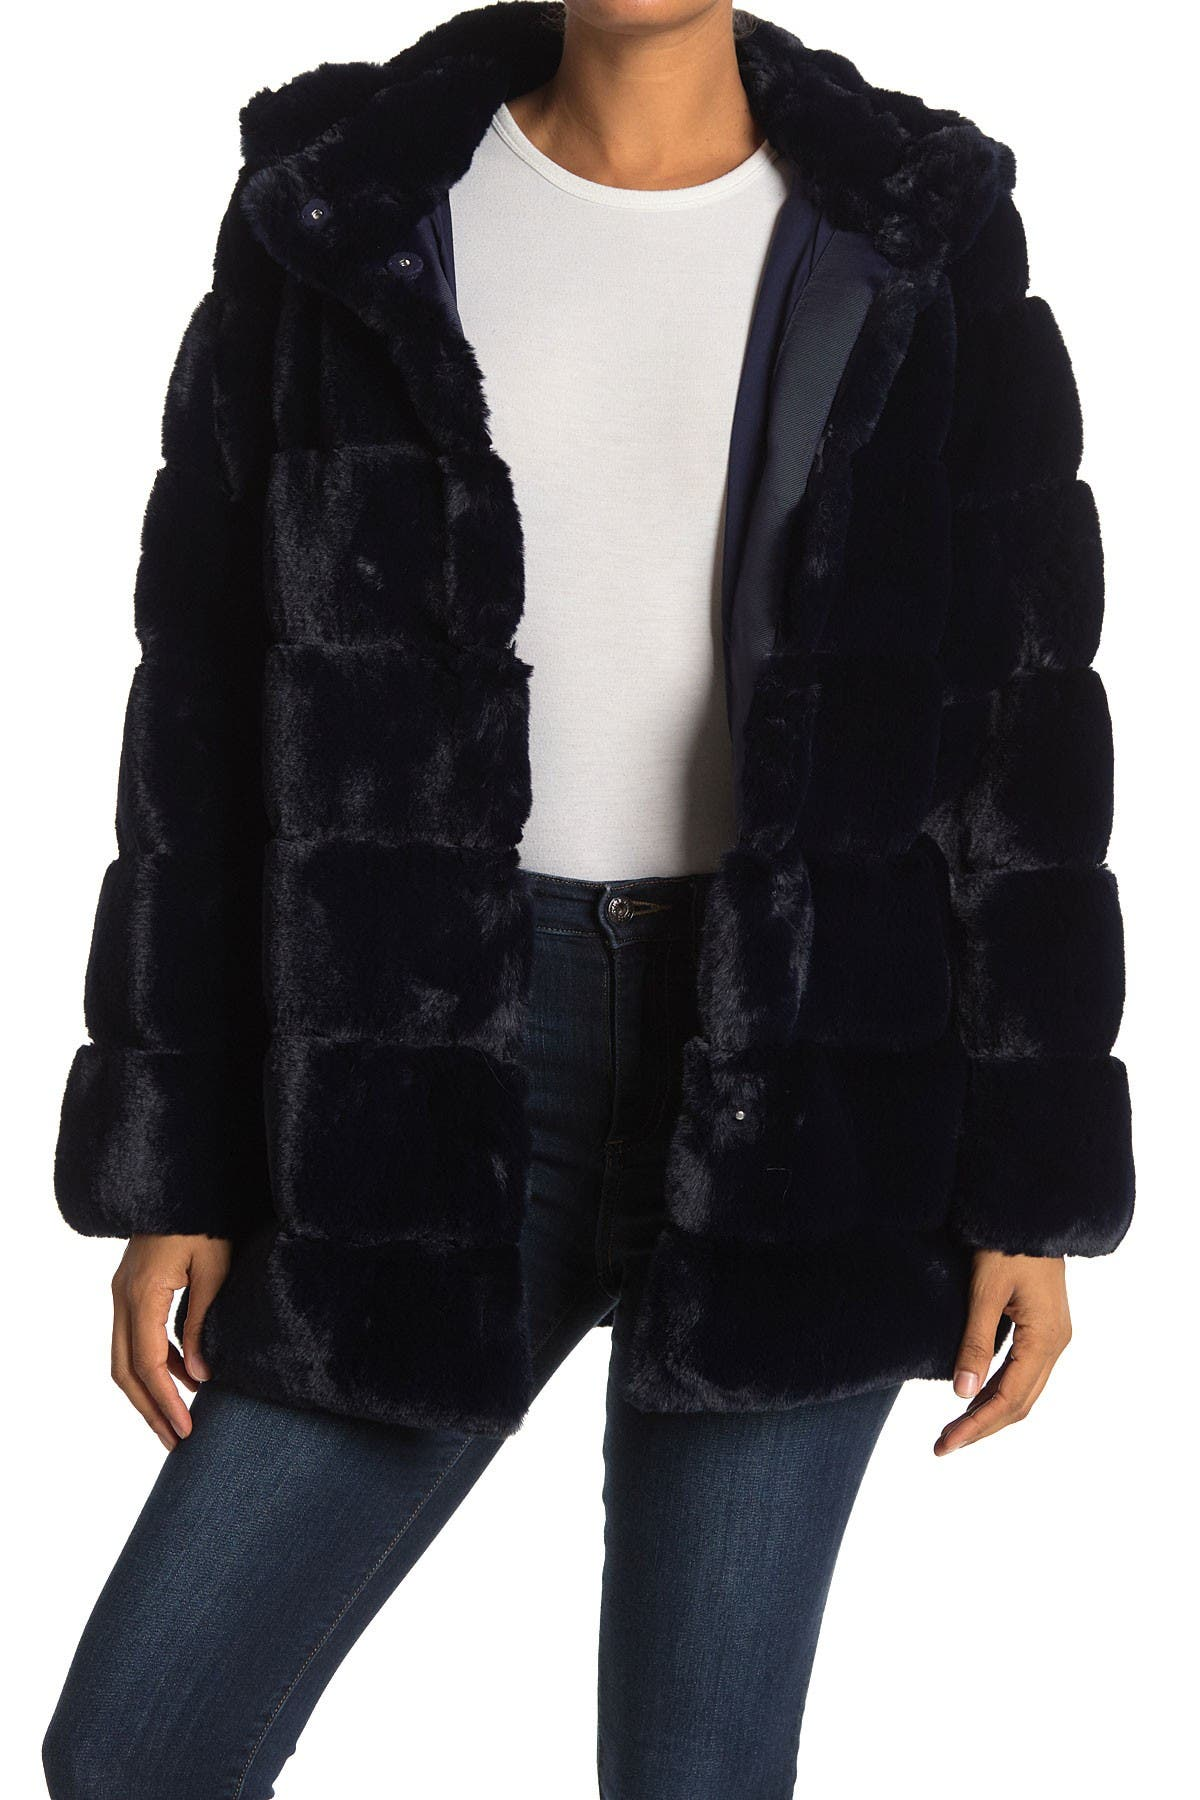 Image of BCBGMAXAZRIA Cozy Grooved Faux Fur Coat